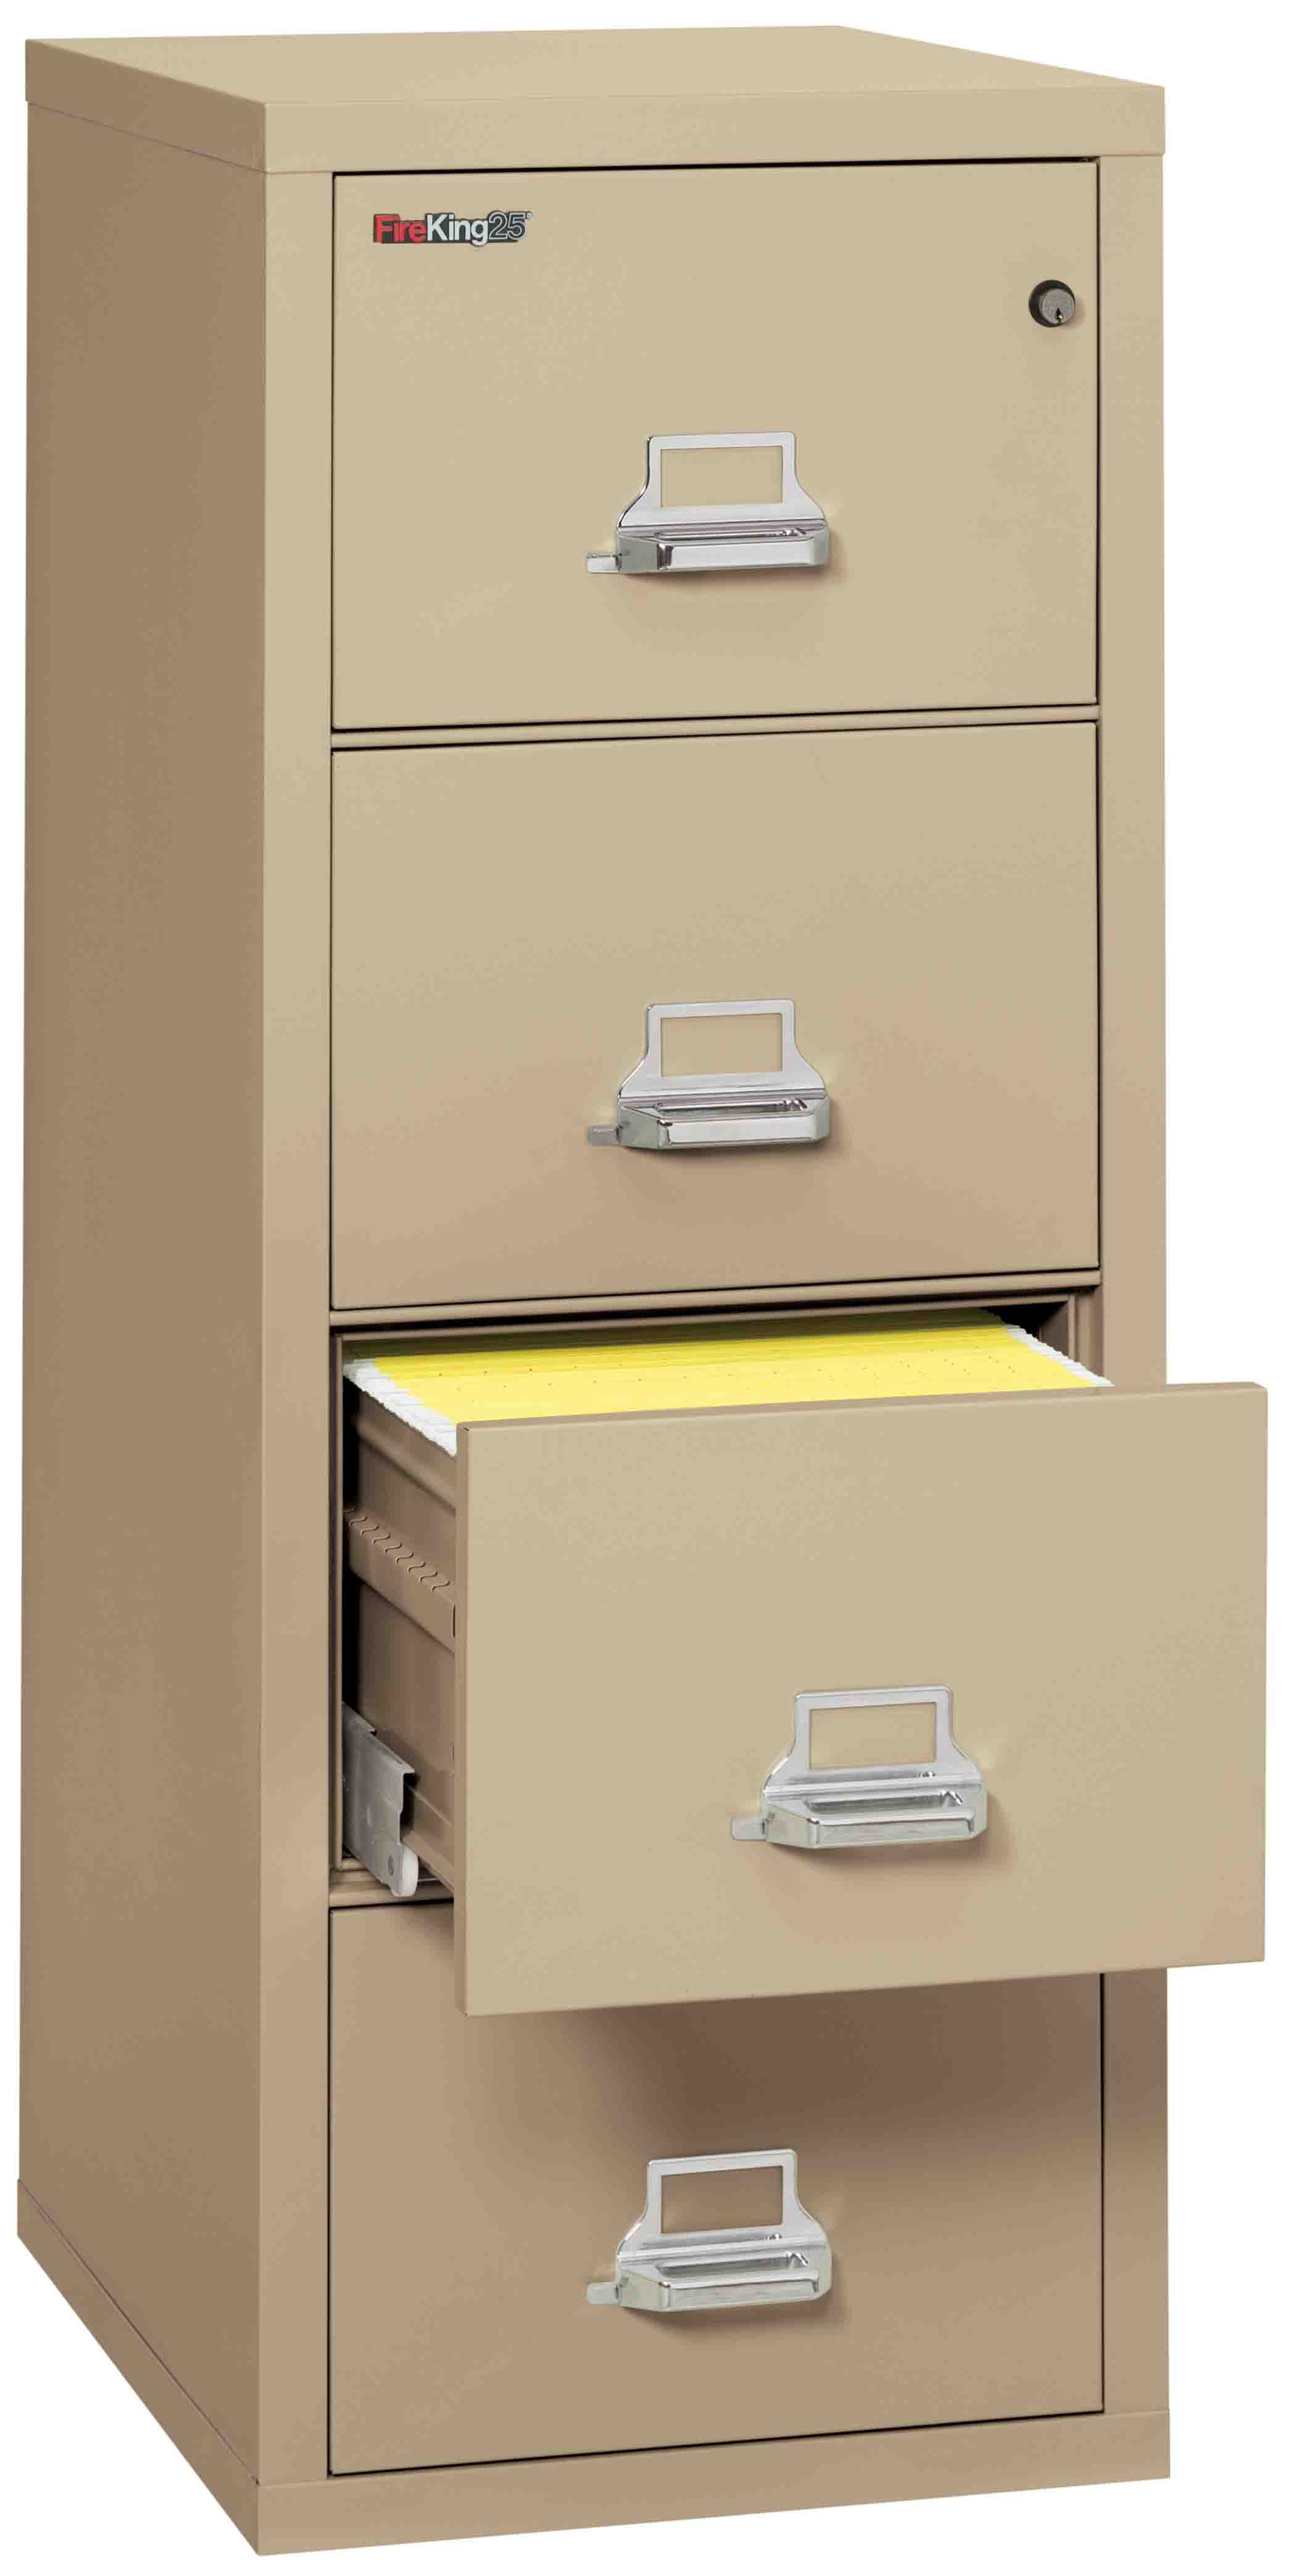 Fire King 4 1825 C Fireking 25 File Cabinets 4 Drawer 1 Hour Fire intended for proportions 2100 X 4174